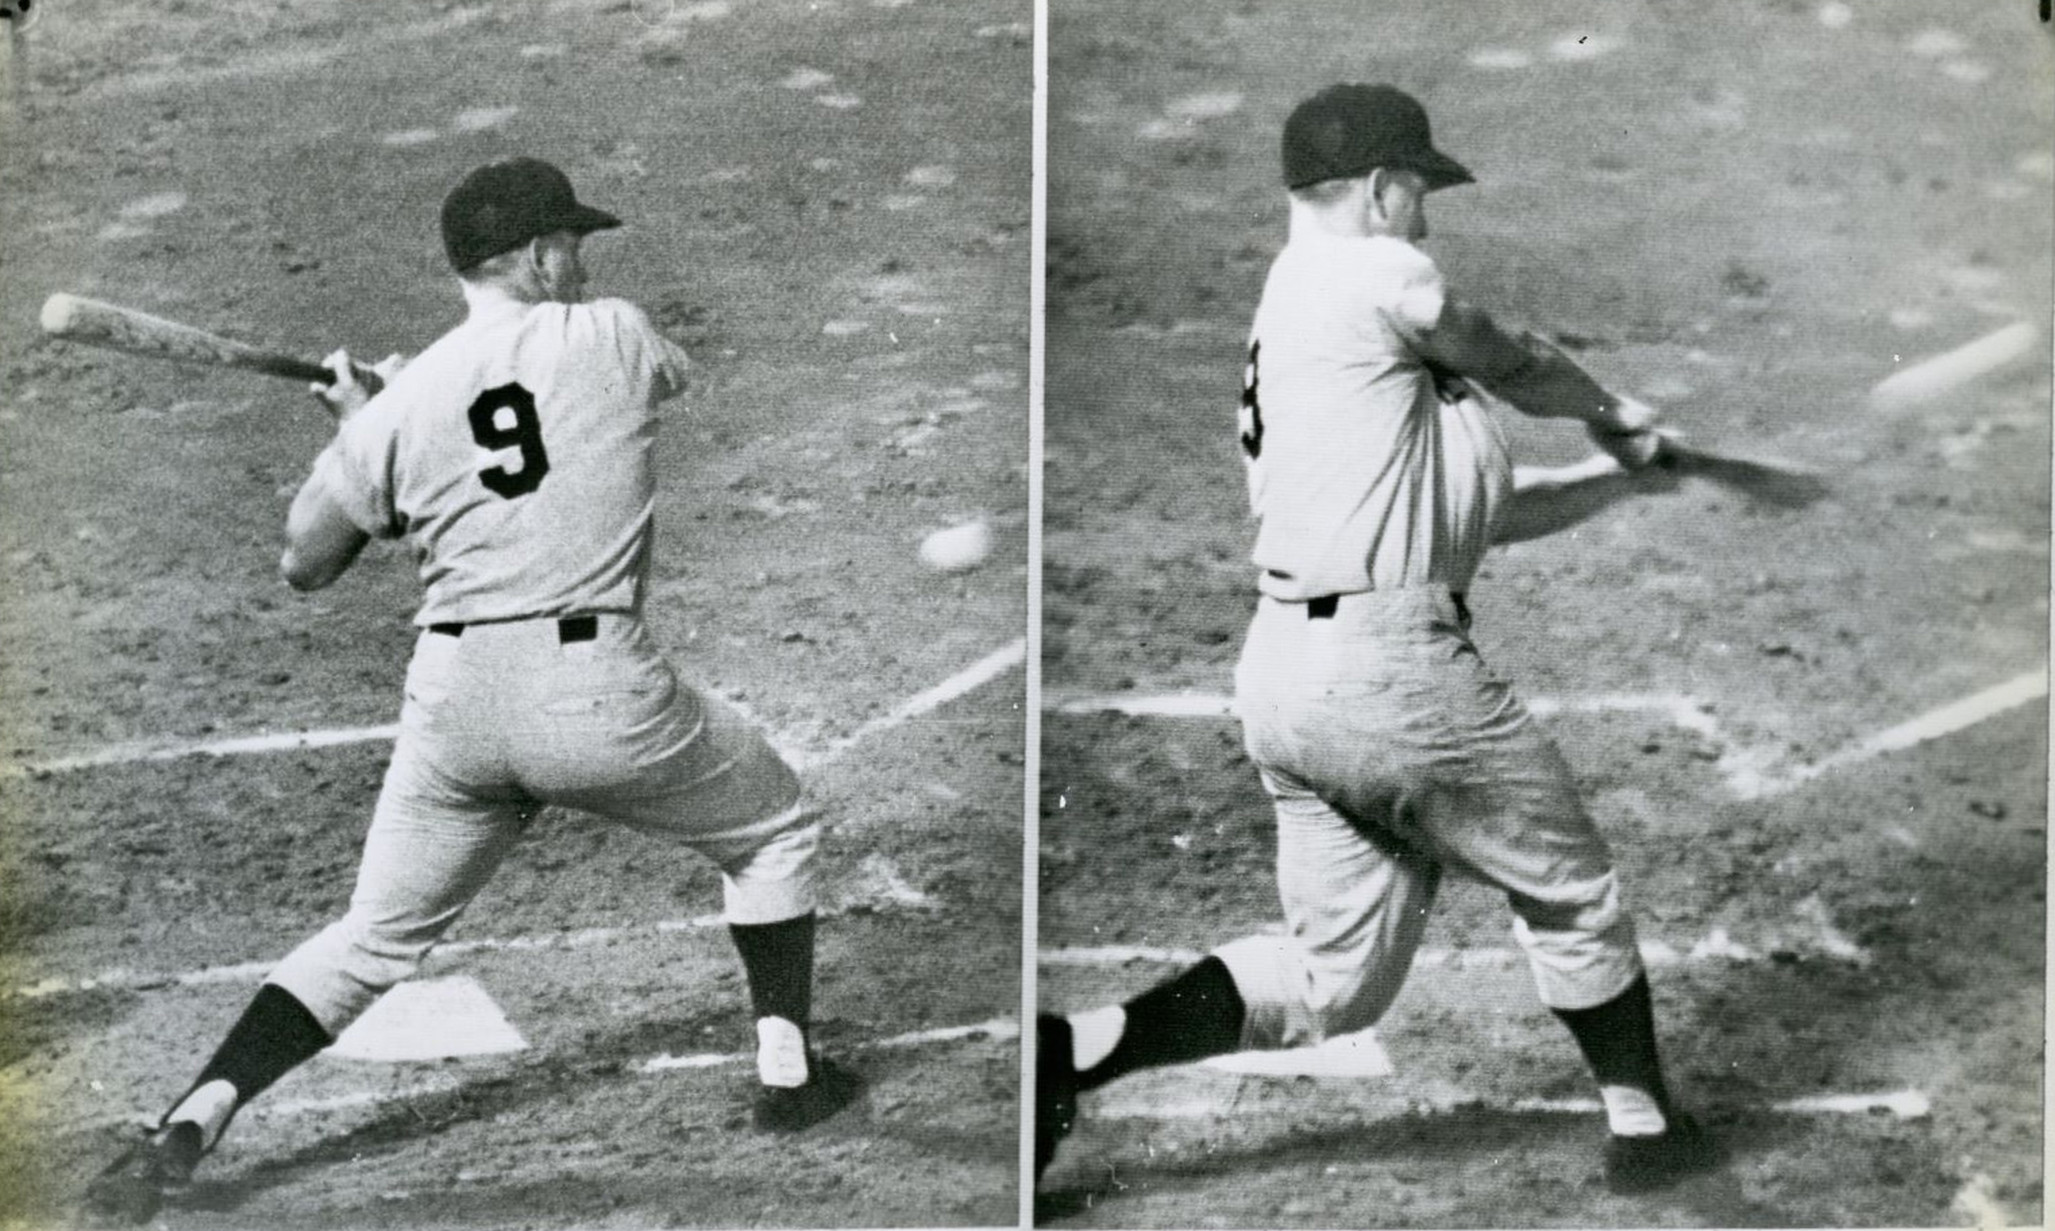 Roger Maris Hits His 59th Home Run September 20, 1961